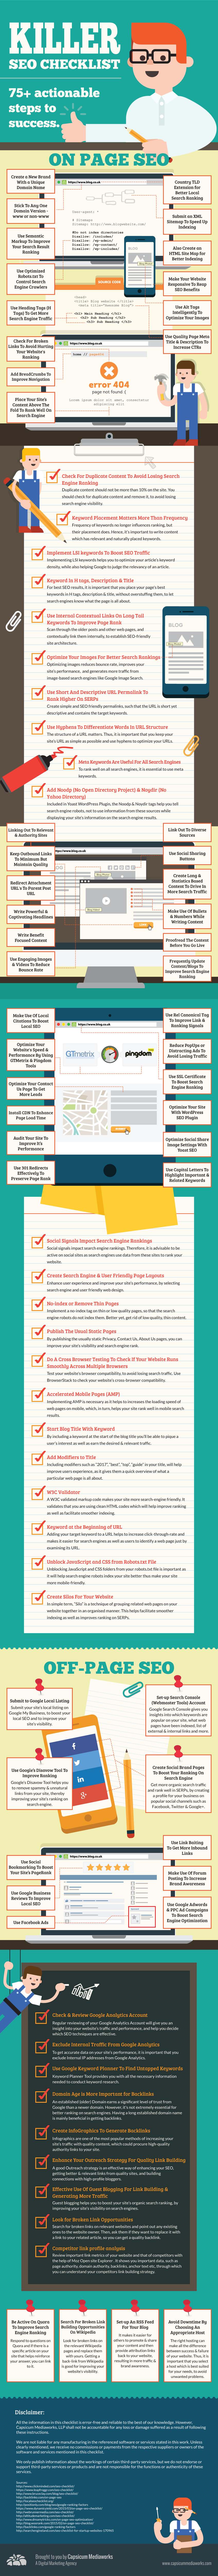 killer-seo-checklist-onpage-offpage-seo-infographic